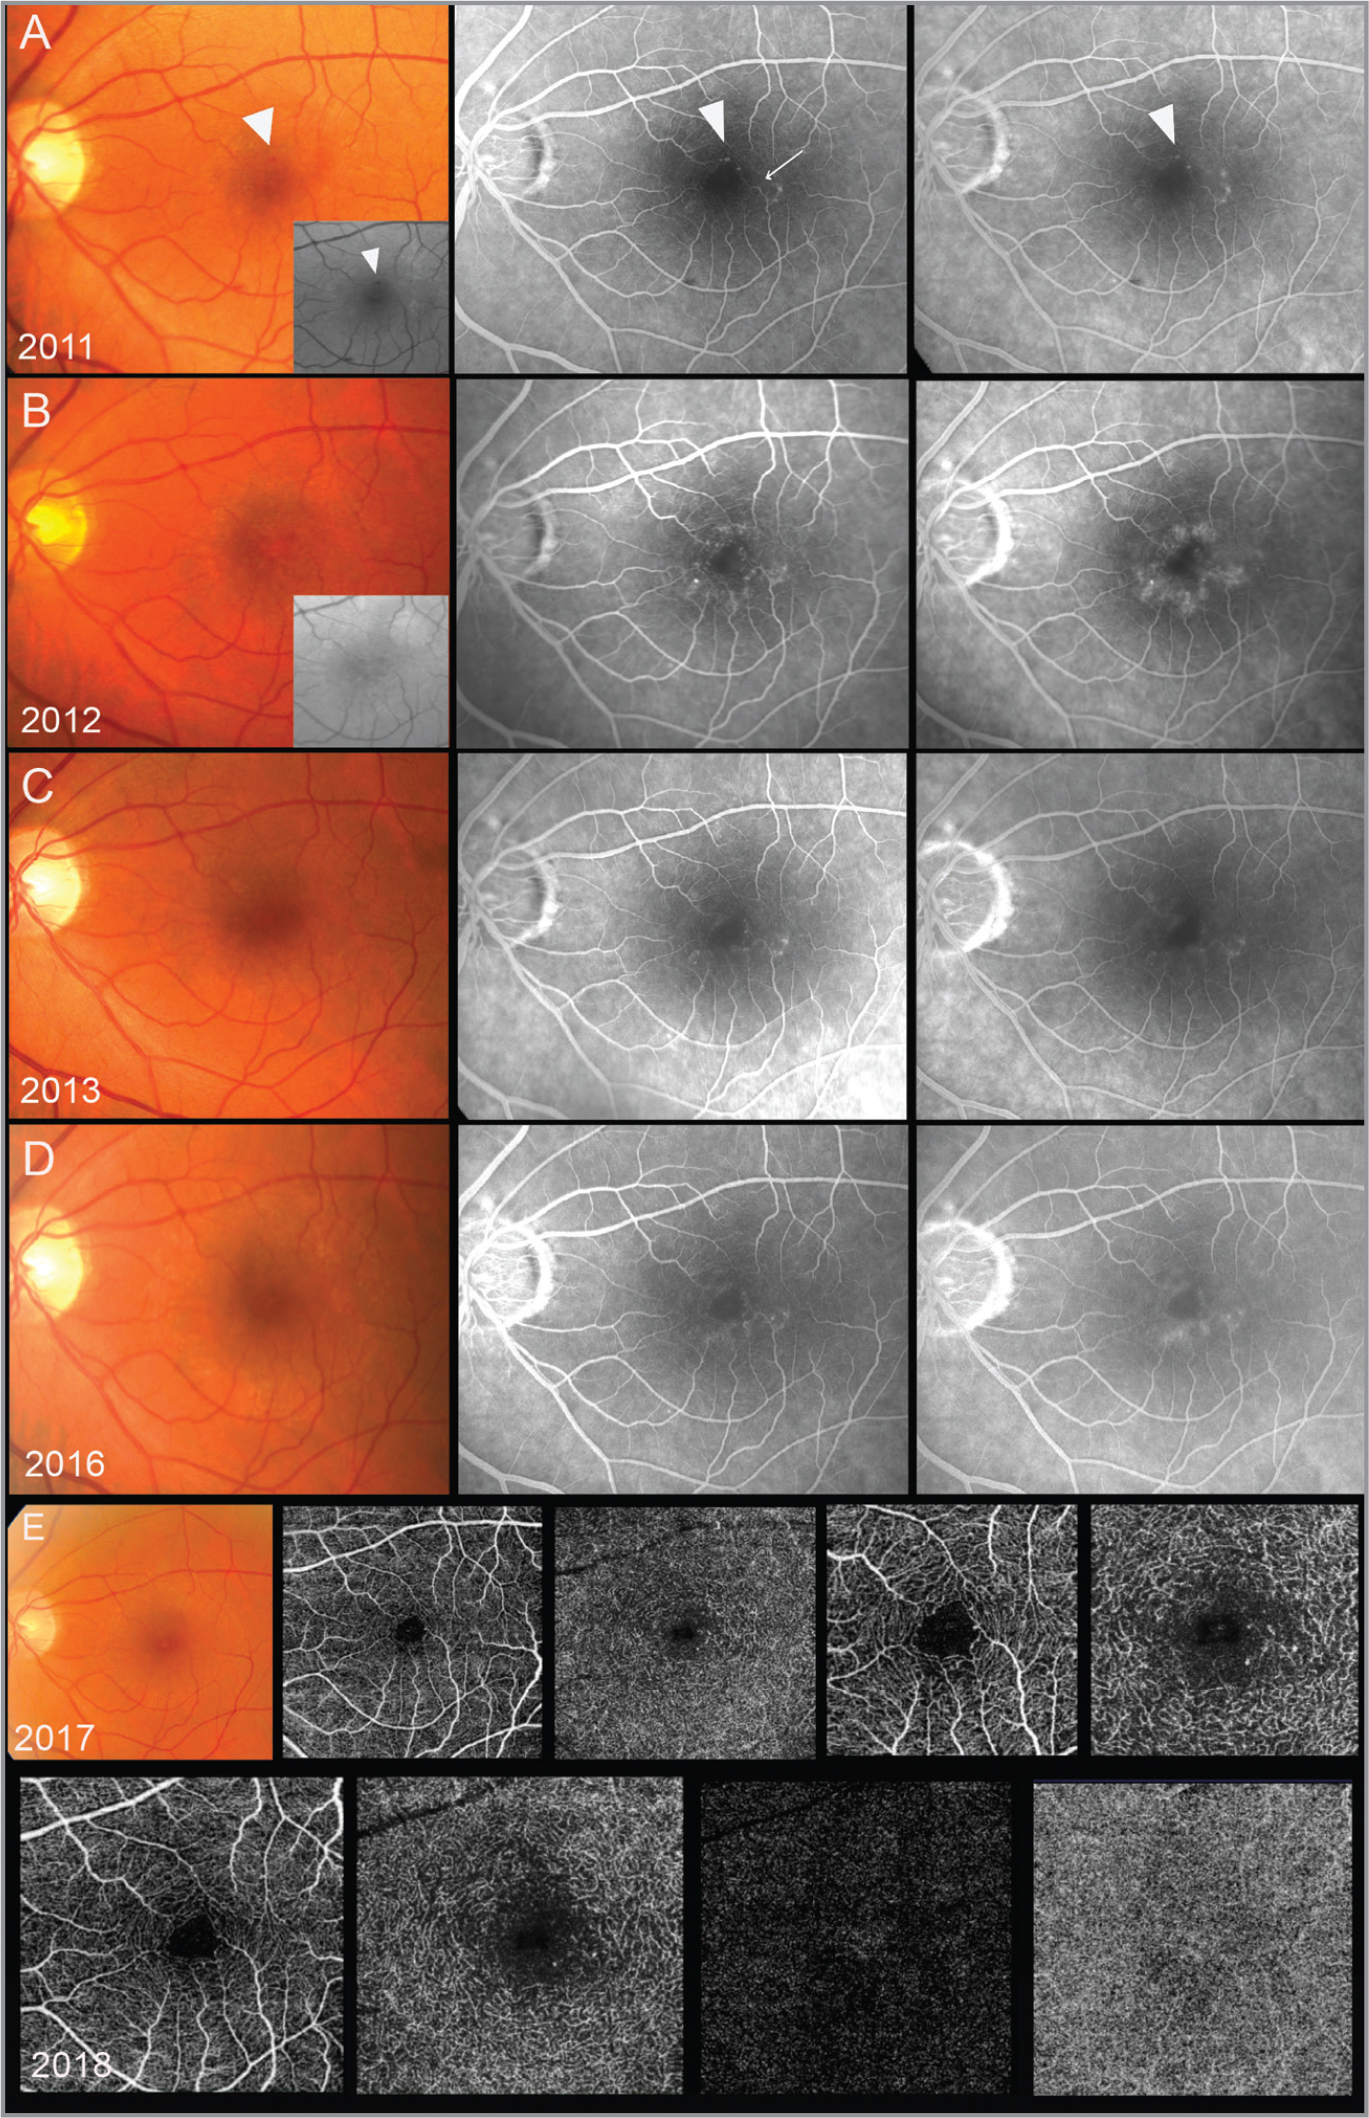 Fundus imaging follow-up of the left eye. (A) Color fundus and red-free photographs, early phase and late-phase fluorescein angiography (FA) of the left eye at first evaluation (July 2011). Color fundus and red-free image shows perifoveal ectatic capillary and crystalline deposits. Early stage FA shows more ectatic capillaries with mild leakage at the late-stage FA. (B) Color fundus and red-free photograph, early phase and late-phase FA (November 2012). Telangiectasia is not detectable at the color fundus and red-free images. Early stage and late-stage FA show several macular telangiectasia with leakage phenomena. (C) Color fundus and red-free photographs, early phase and late-phase FA (August 2013). (D) Color fundus and red-free photographs, early-phase and late-phase FA (October 2016). (E) Color fundus photograph and optical coherence tomography angiography (OCTA) of superficial and deep vascular network (May 2017). The figures show dilated vessels in the deep retinal capillary plexus that are the most pronounced in the region temporal to the fovea. (F) OCTA of superficial and deep vascular network, outer retinal segments, and choriocapillaris (January 2018). Images show 4.5 × 4.5 OCTA scans.